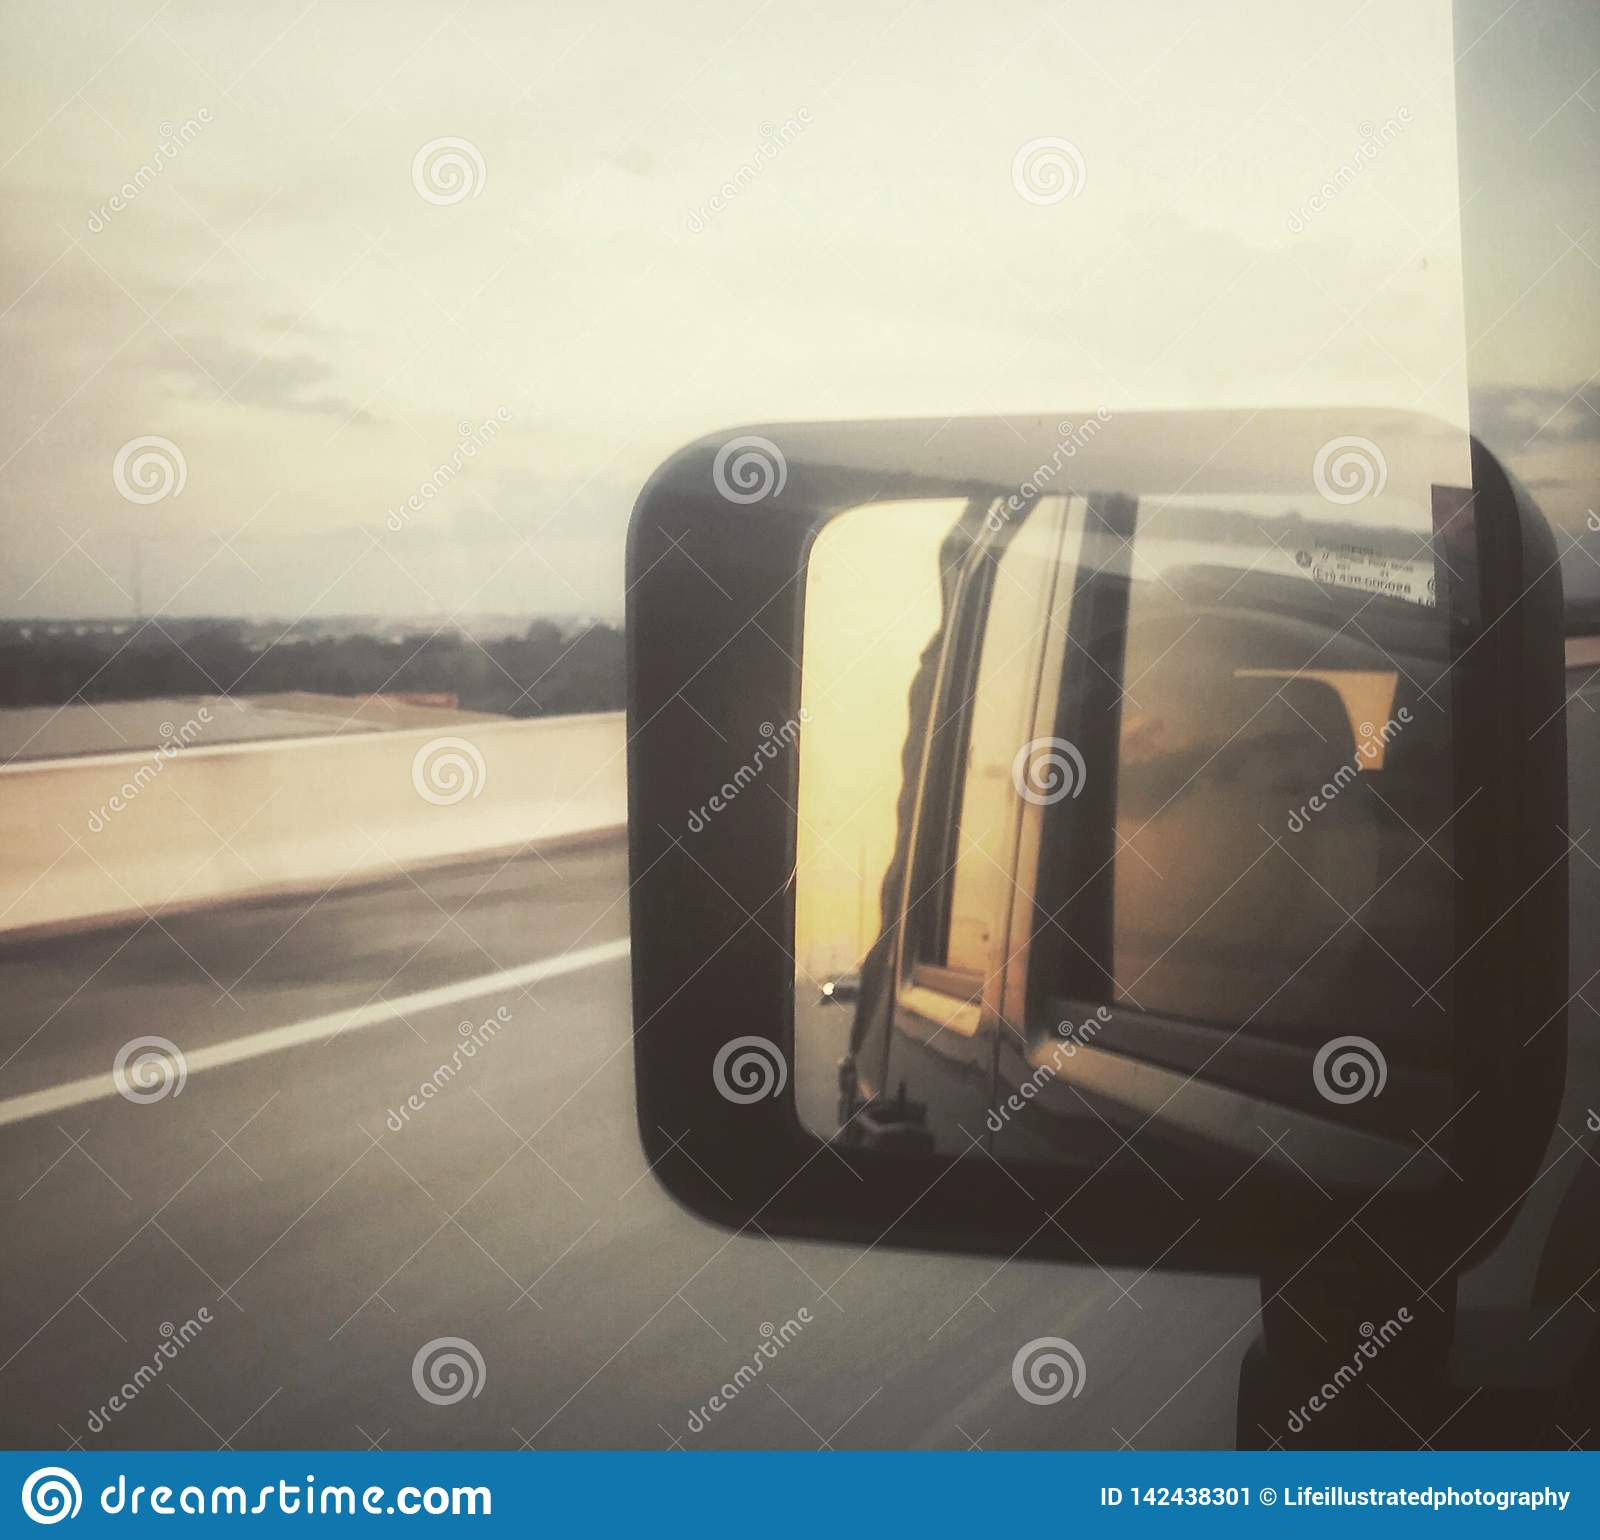 Sunset in the rear view